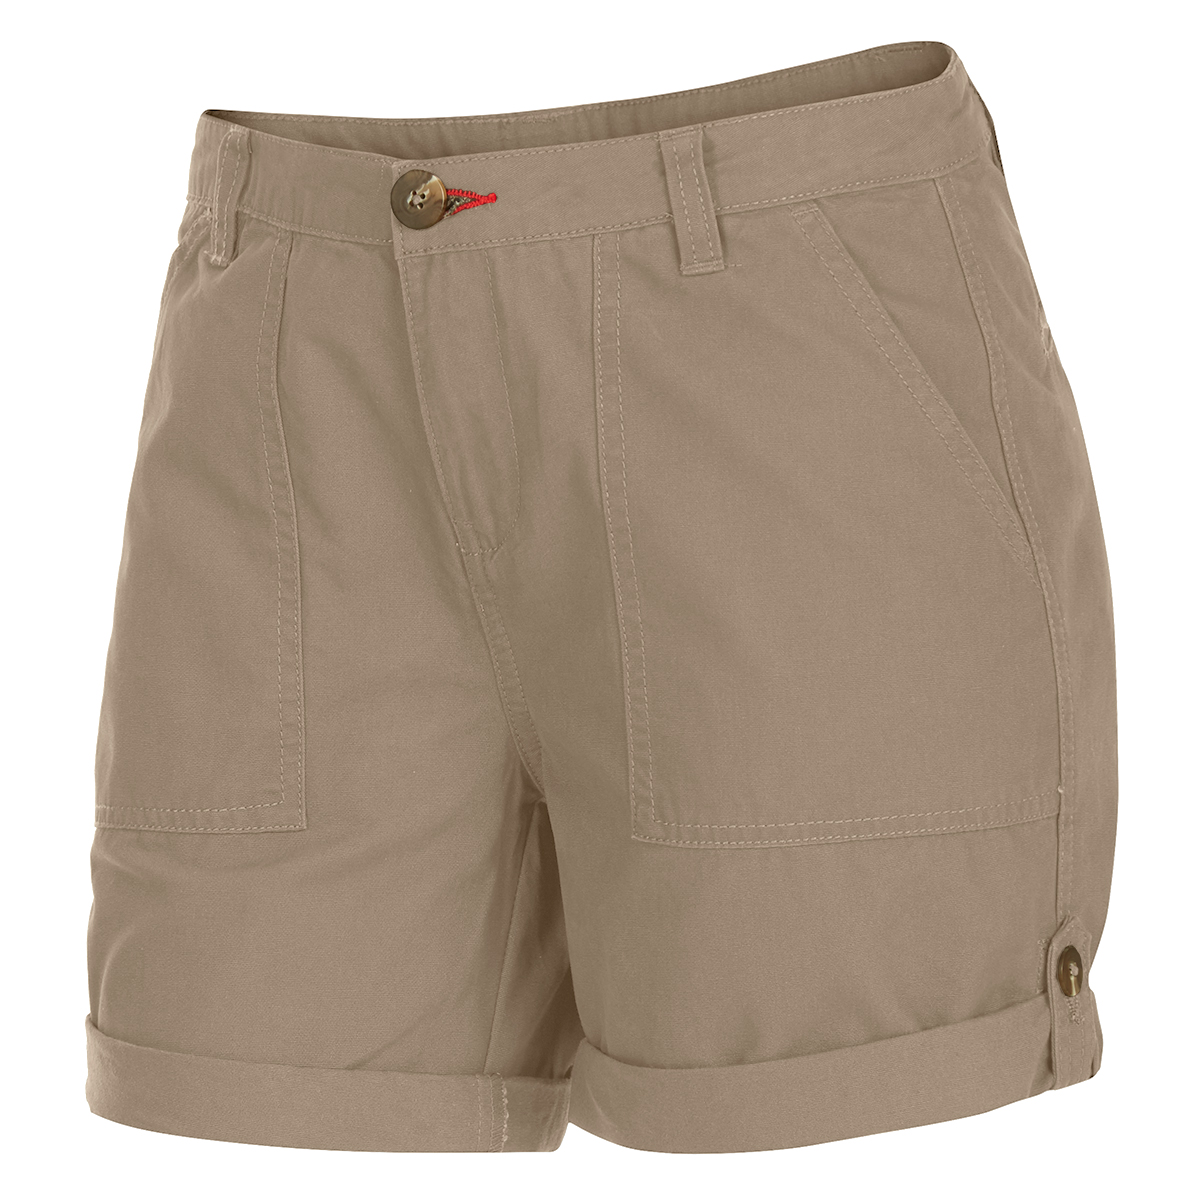 Ems Women's Roll-Up Shorts - Brown, 0